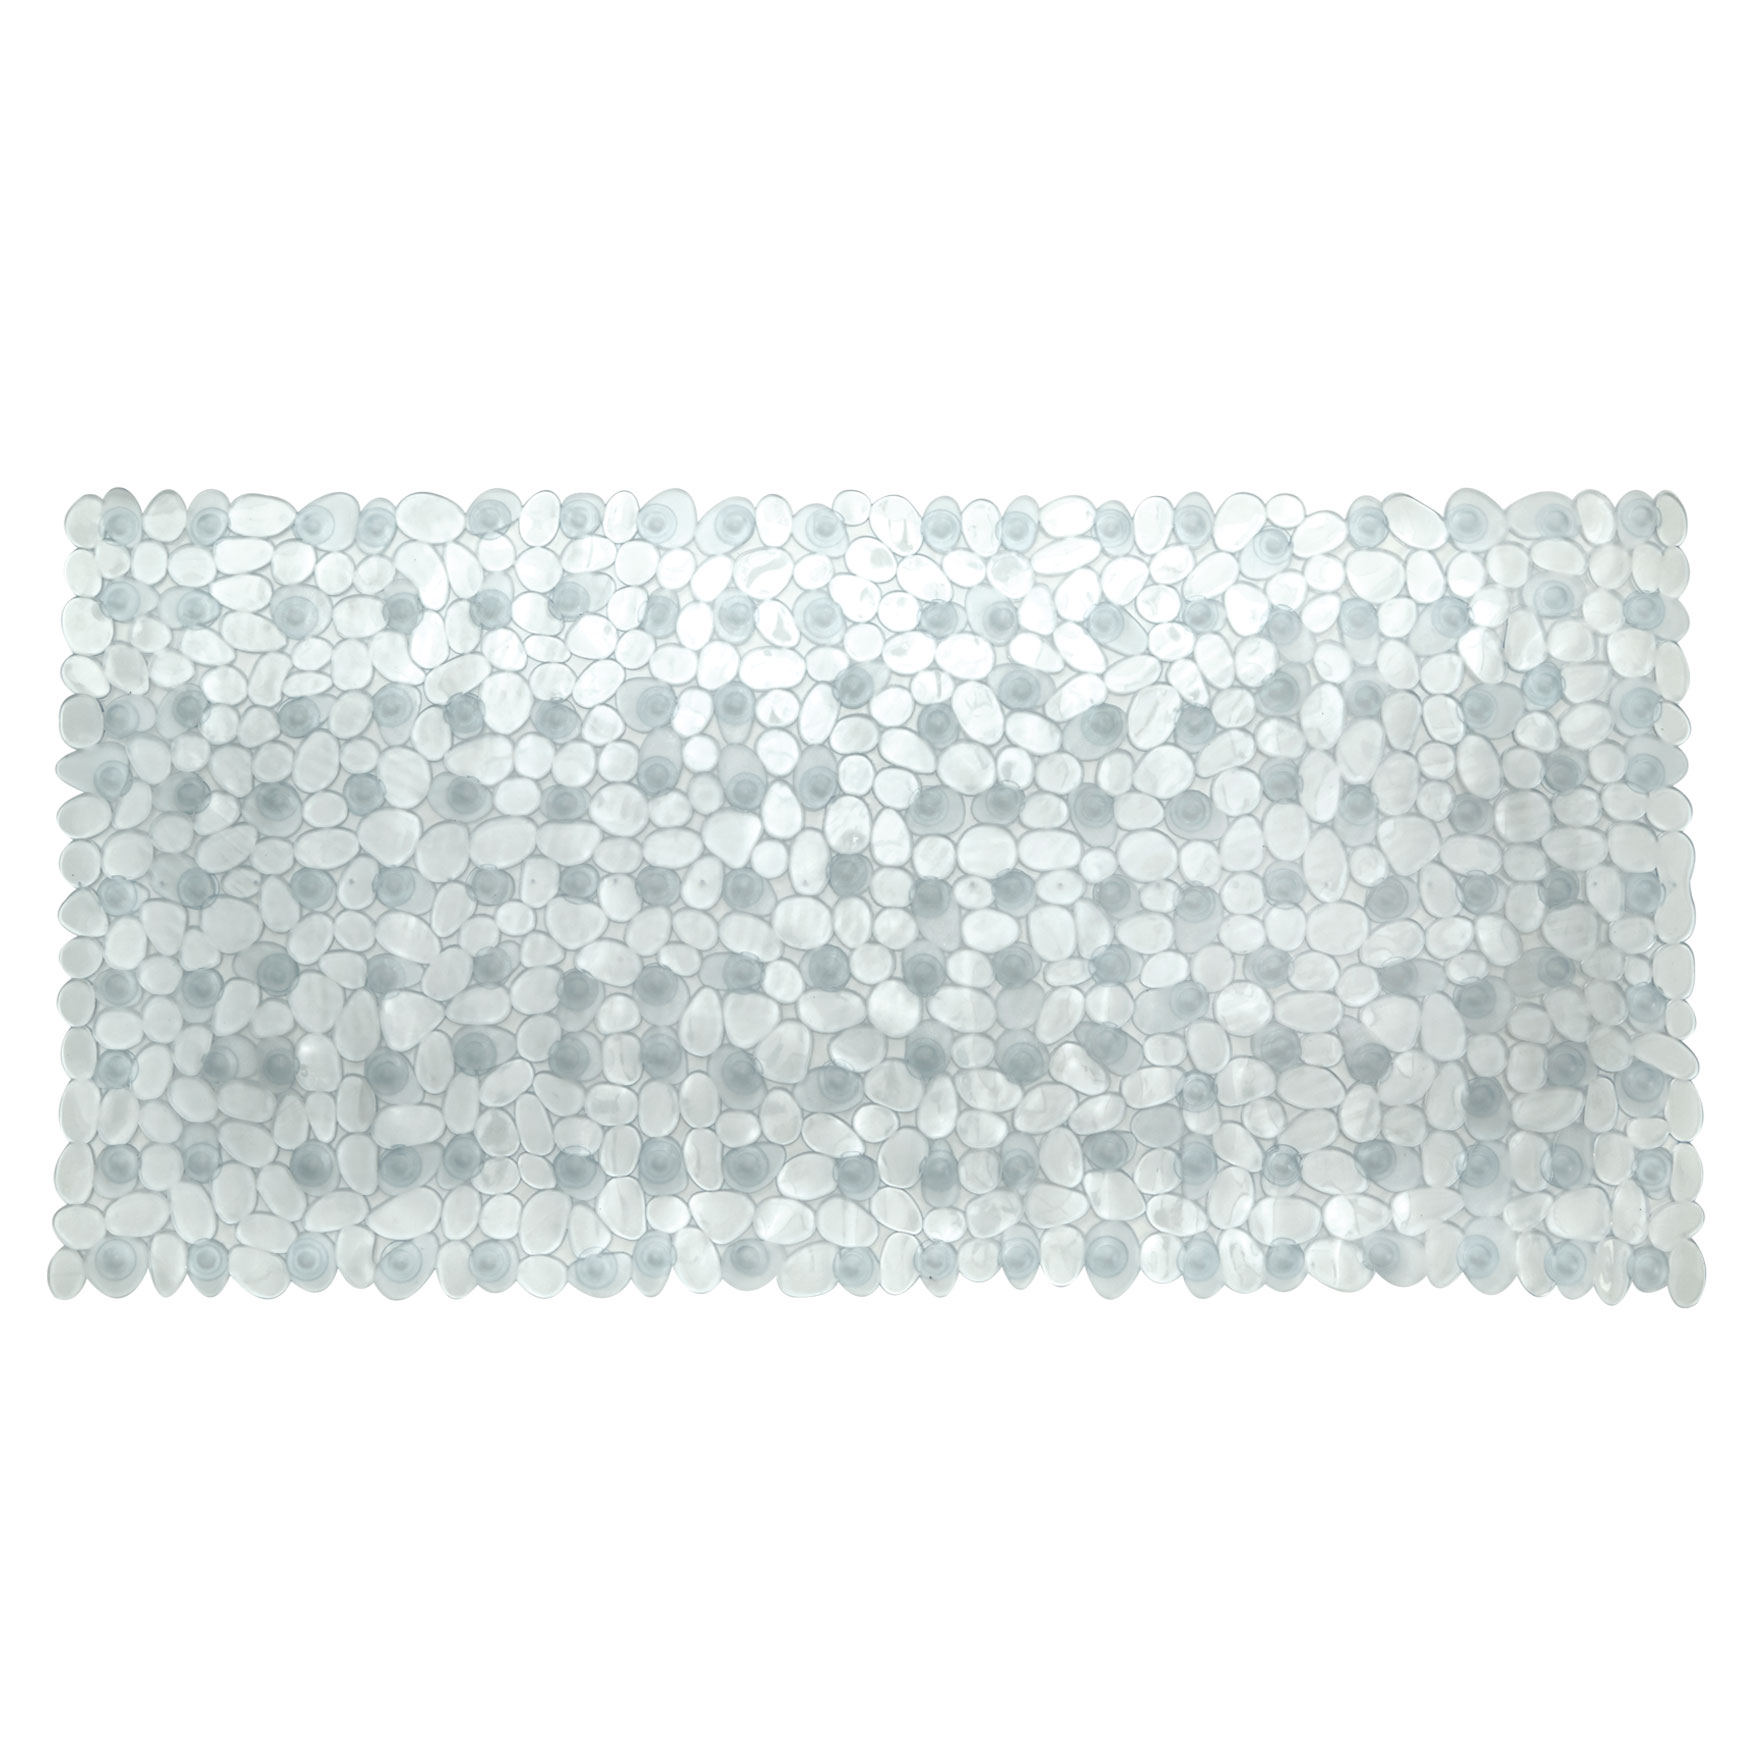 Extra Long Tub Mat With River Stones Design Plus Size Bath Rugs